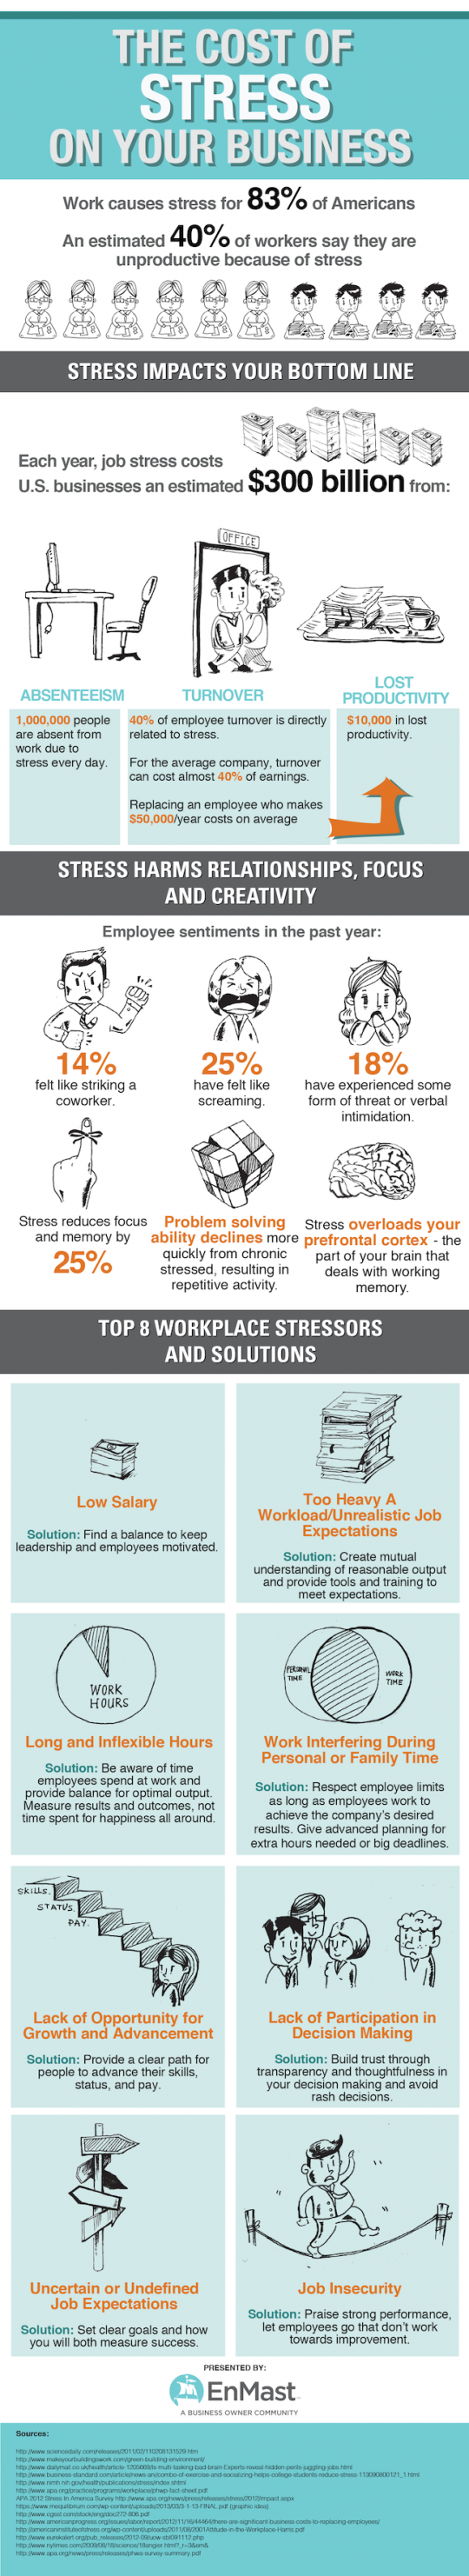 The Cost Of Stress On Your Business